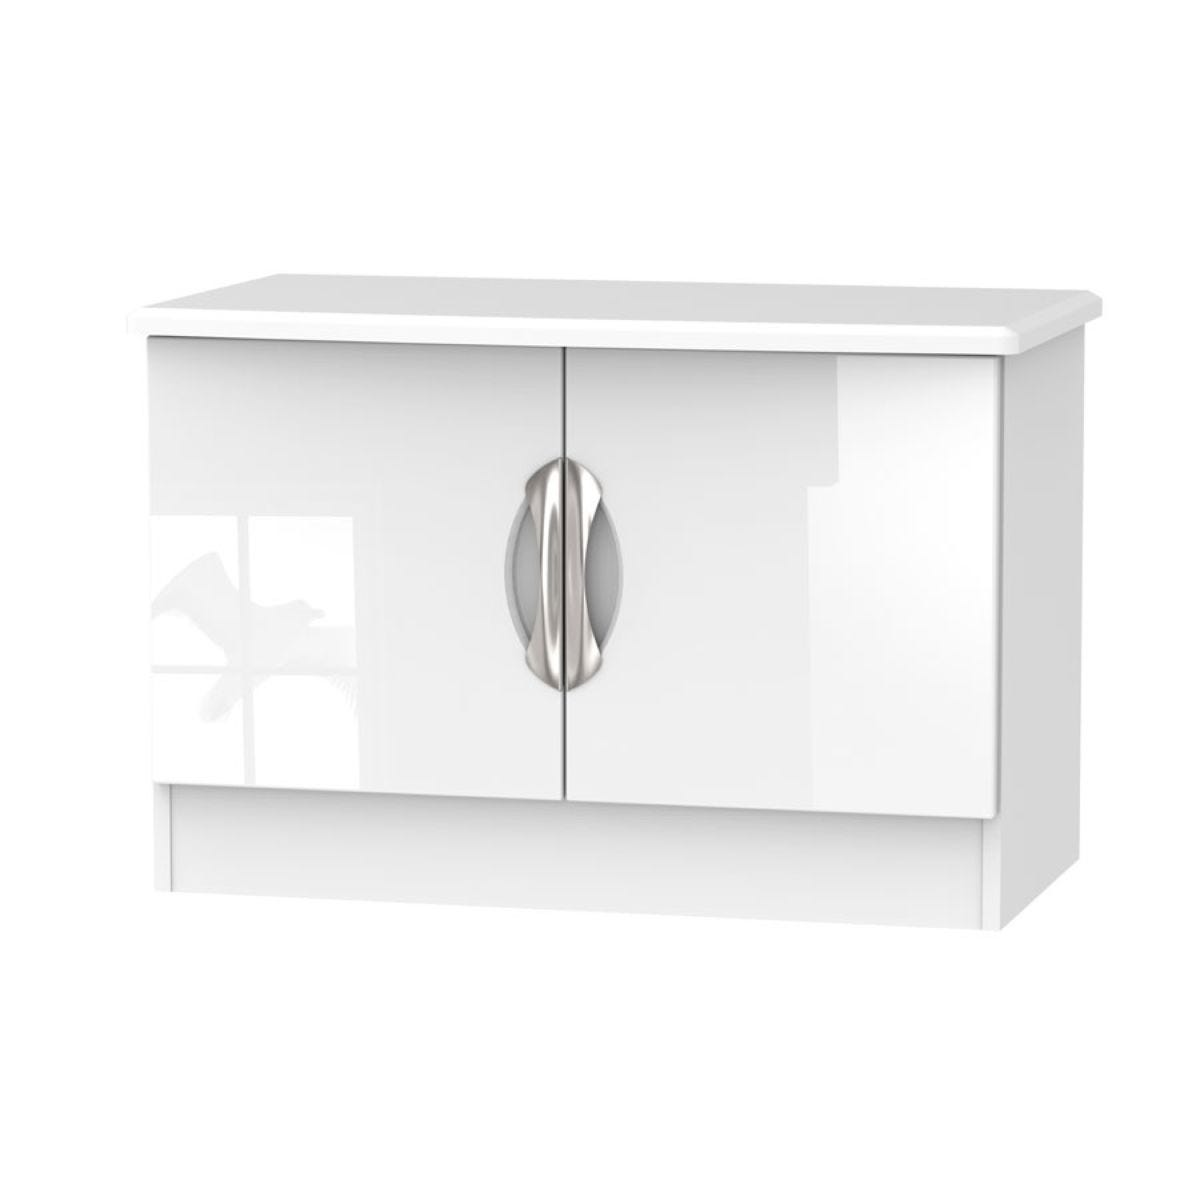 Indices Double Door Bedside Table - White/Grey